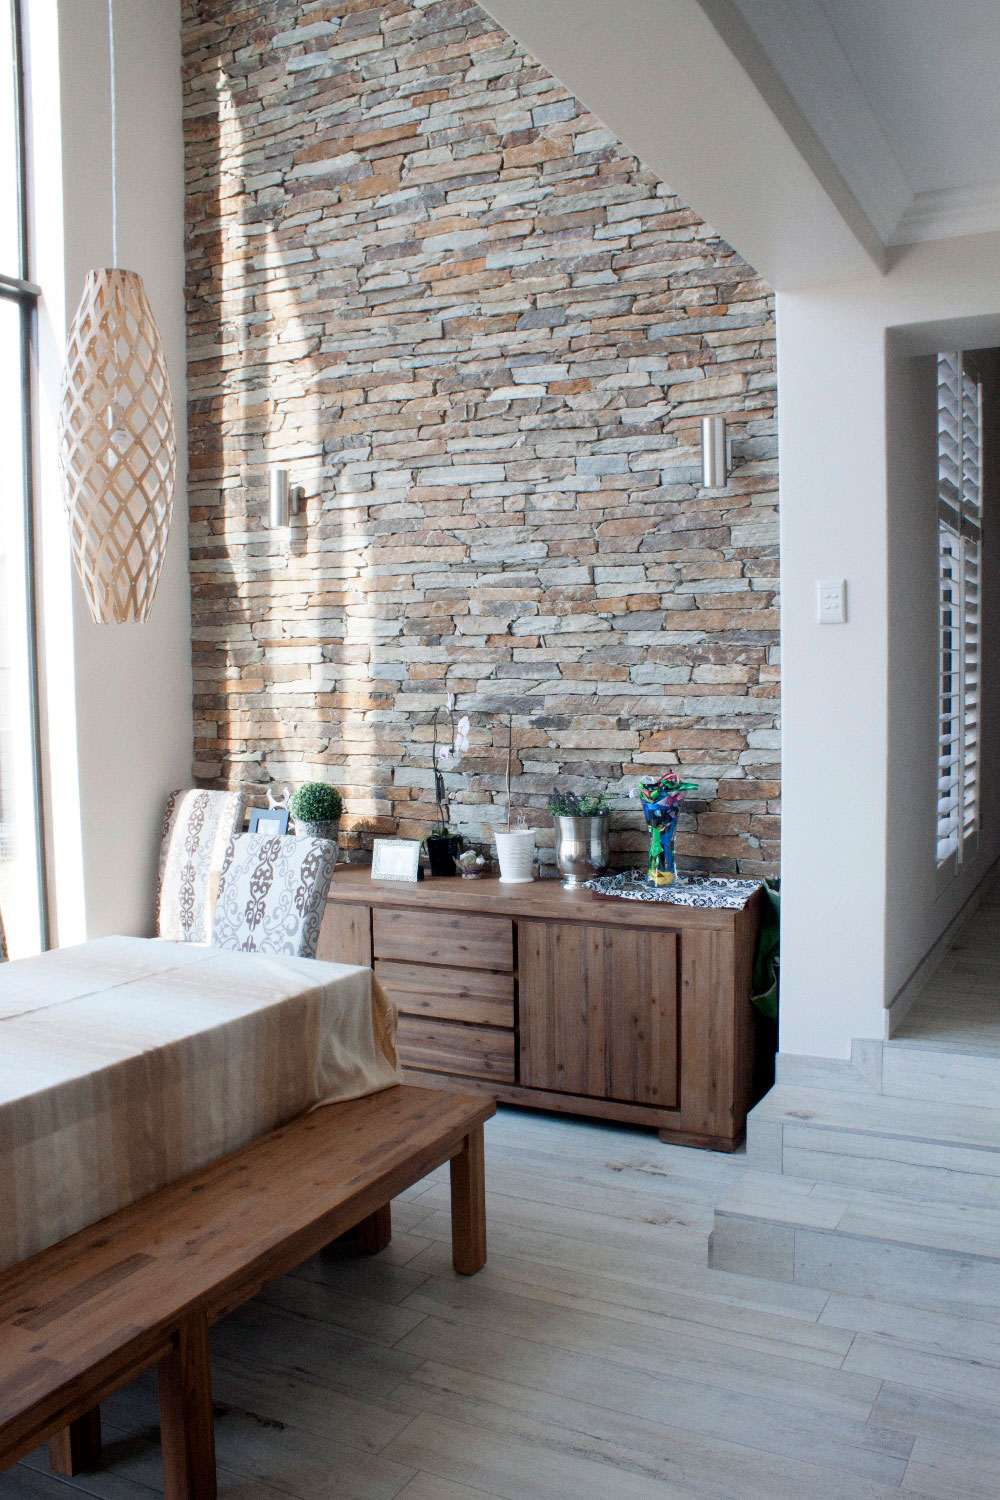 Union Tiles offers a wide range of natural stone claddings